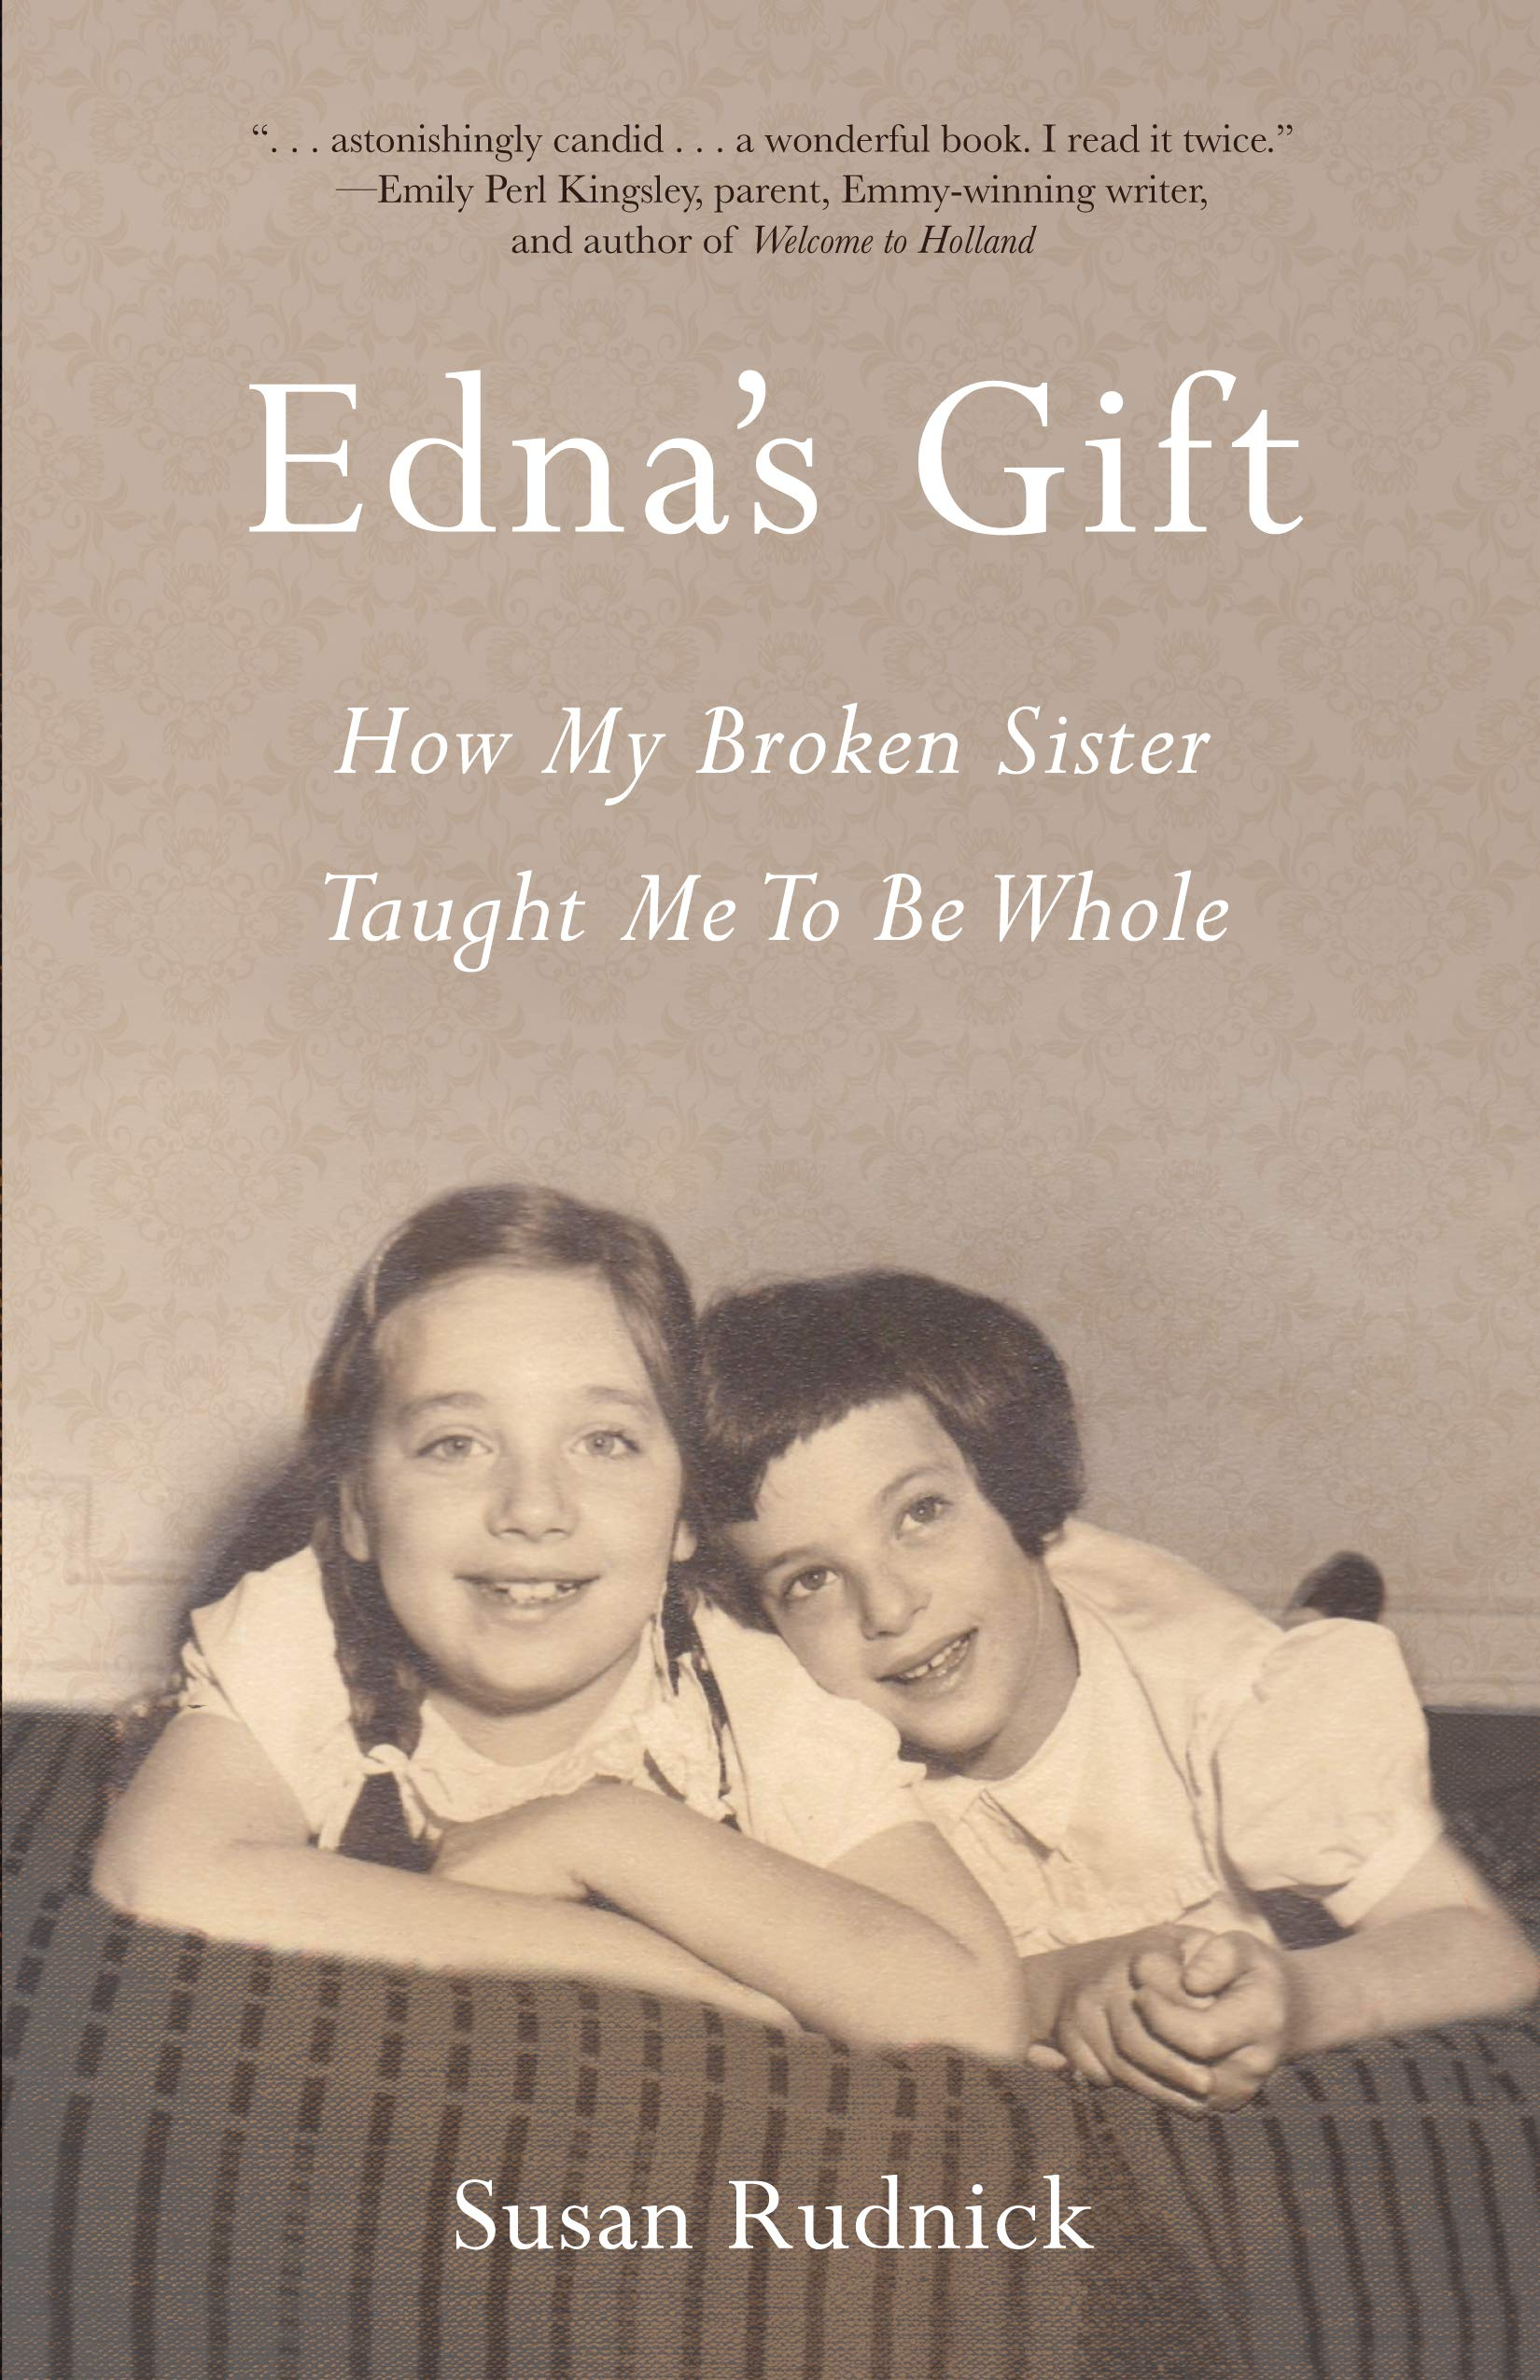 Edna's Gift: How My Broken Sister Taught Me to Be Whole